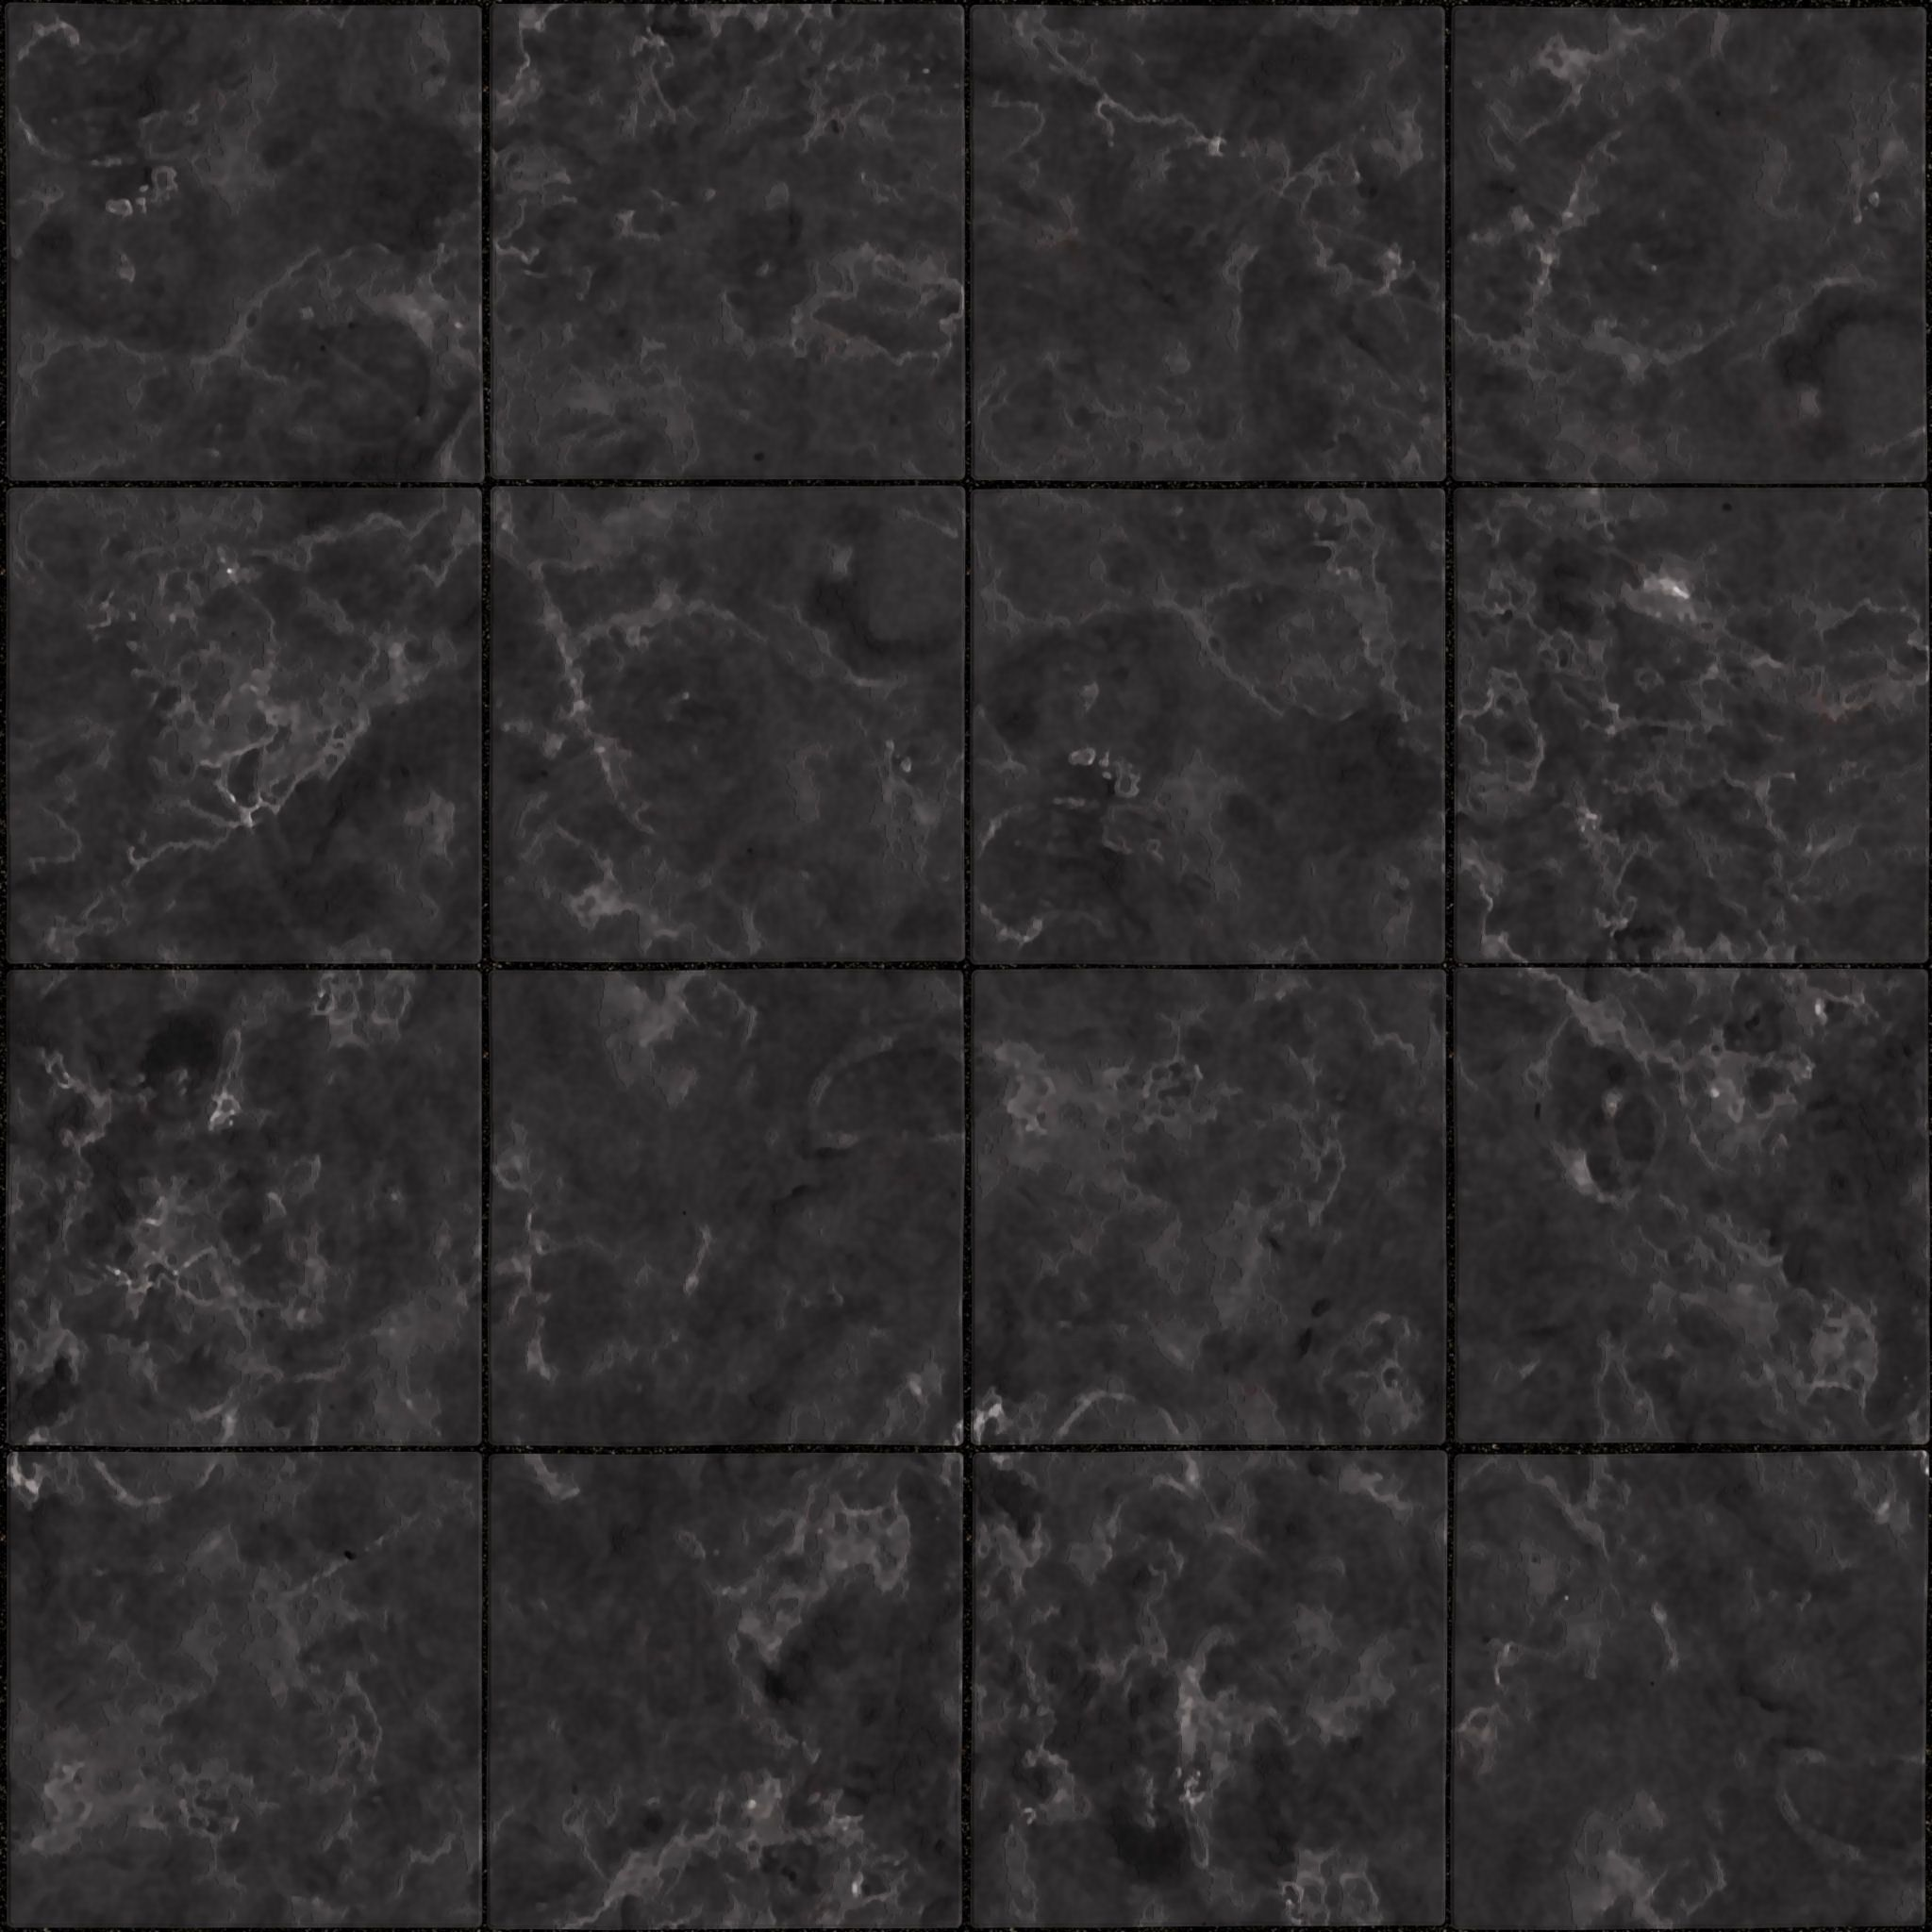 black tile floor texture. Black-and-white-tile-floor-texture-amncqzt8.jpg ( Black Tile Floor Texture A